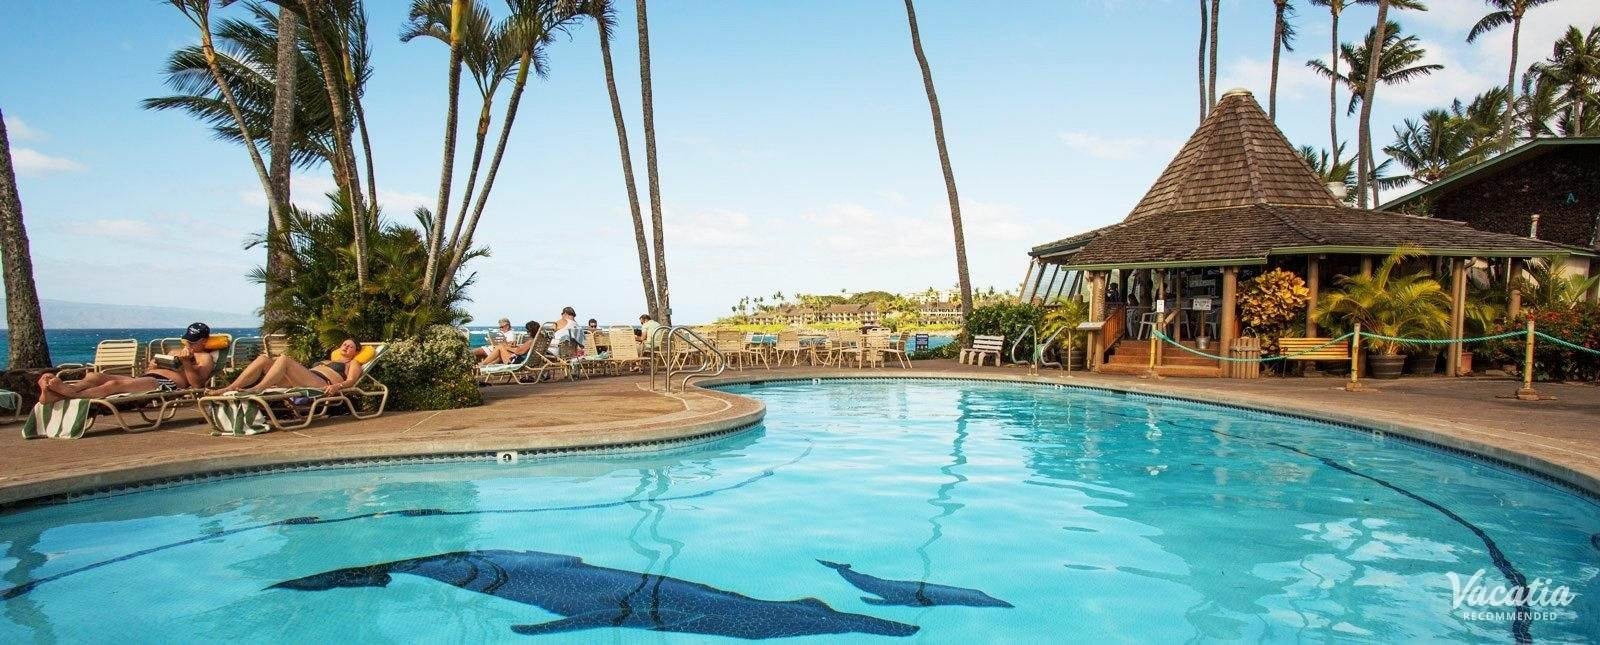 Ultimate List of Best Cheap Hostels for Backpackers in Kapalua, Hawaii, Napili Shores Maui by Outrigger